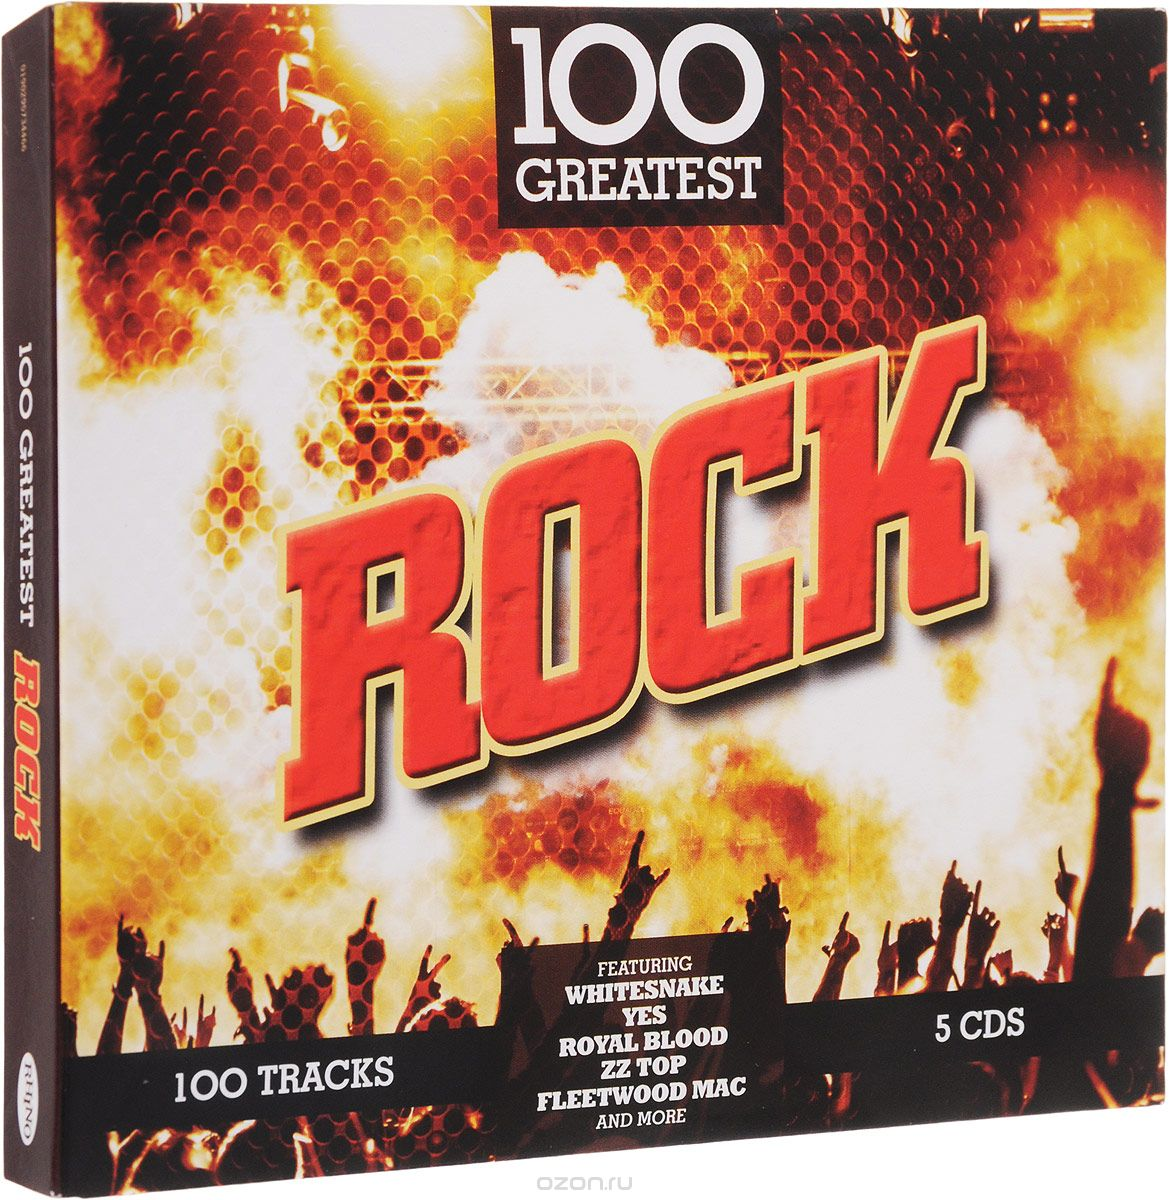 100 Greatest Rock (Special Price Limited Time) (5 CD)